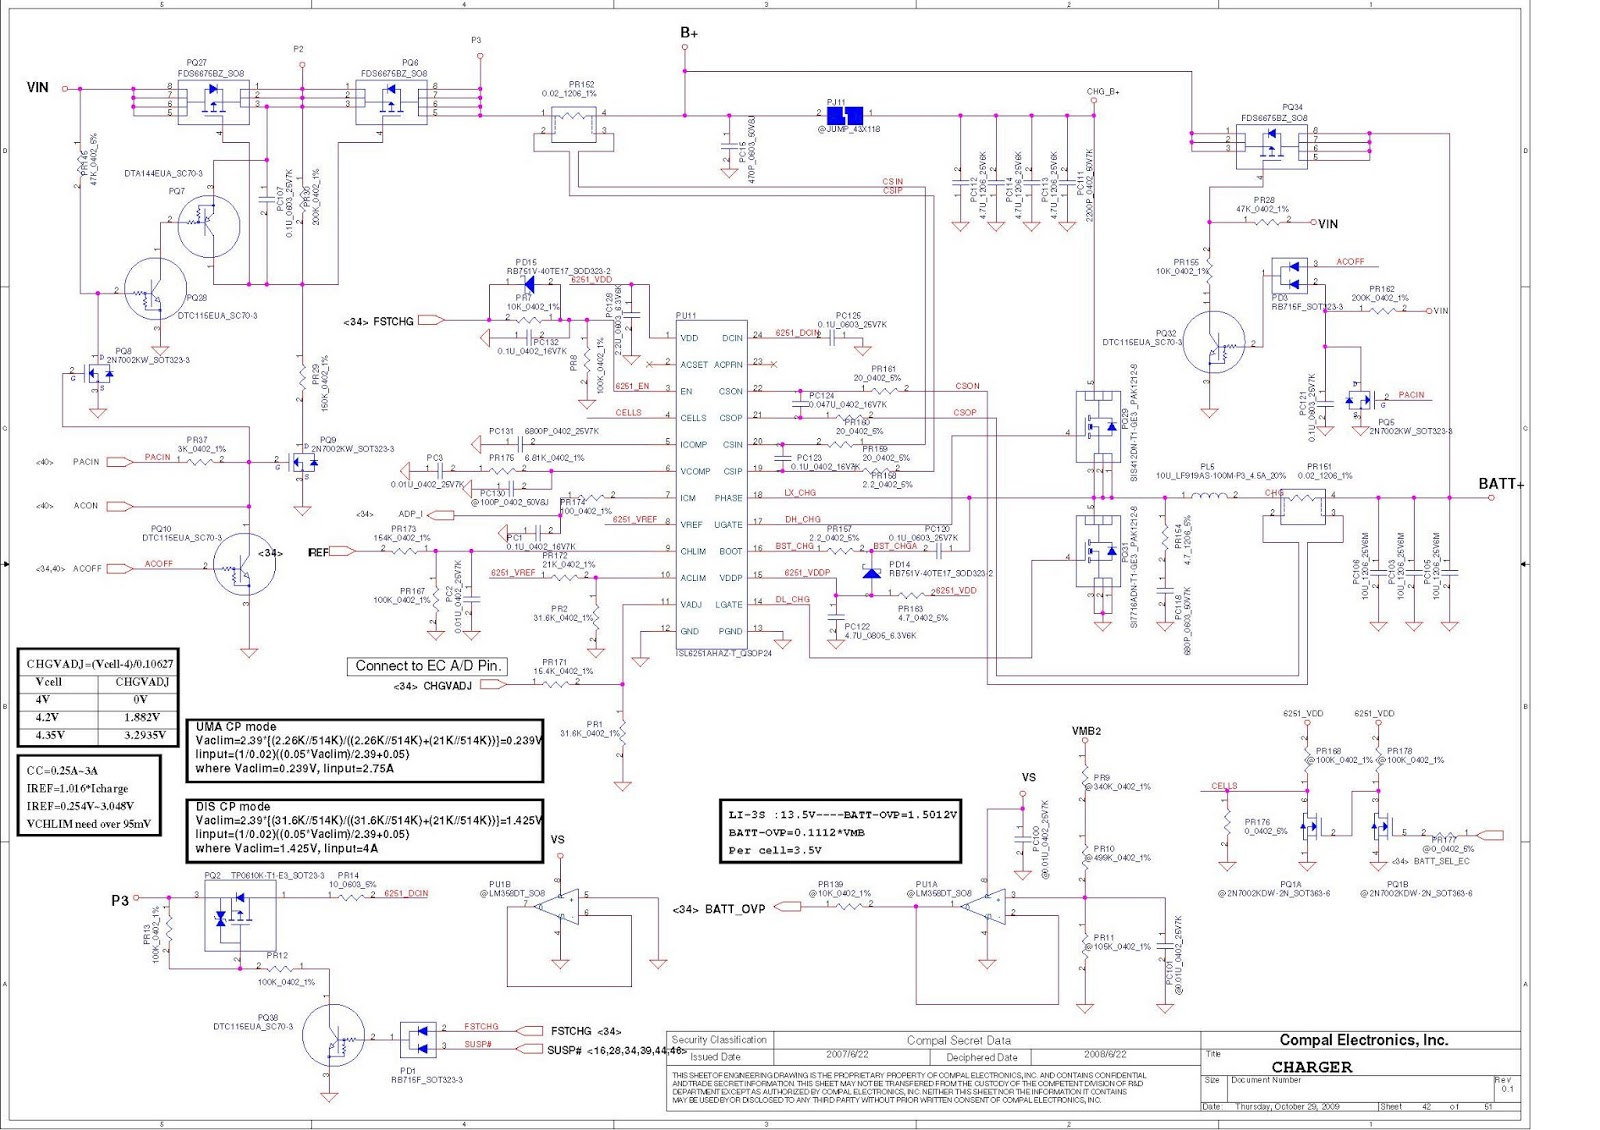 Dell Laptop Power Supply Wiring Diagram Dell Laptop Power Cord ...